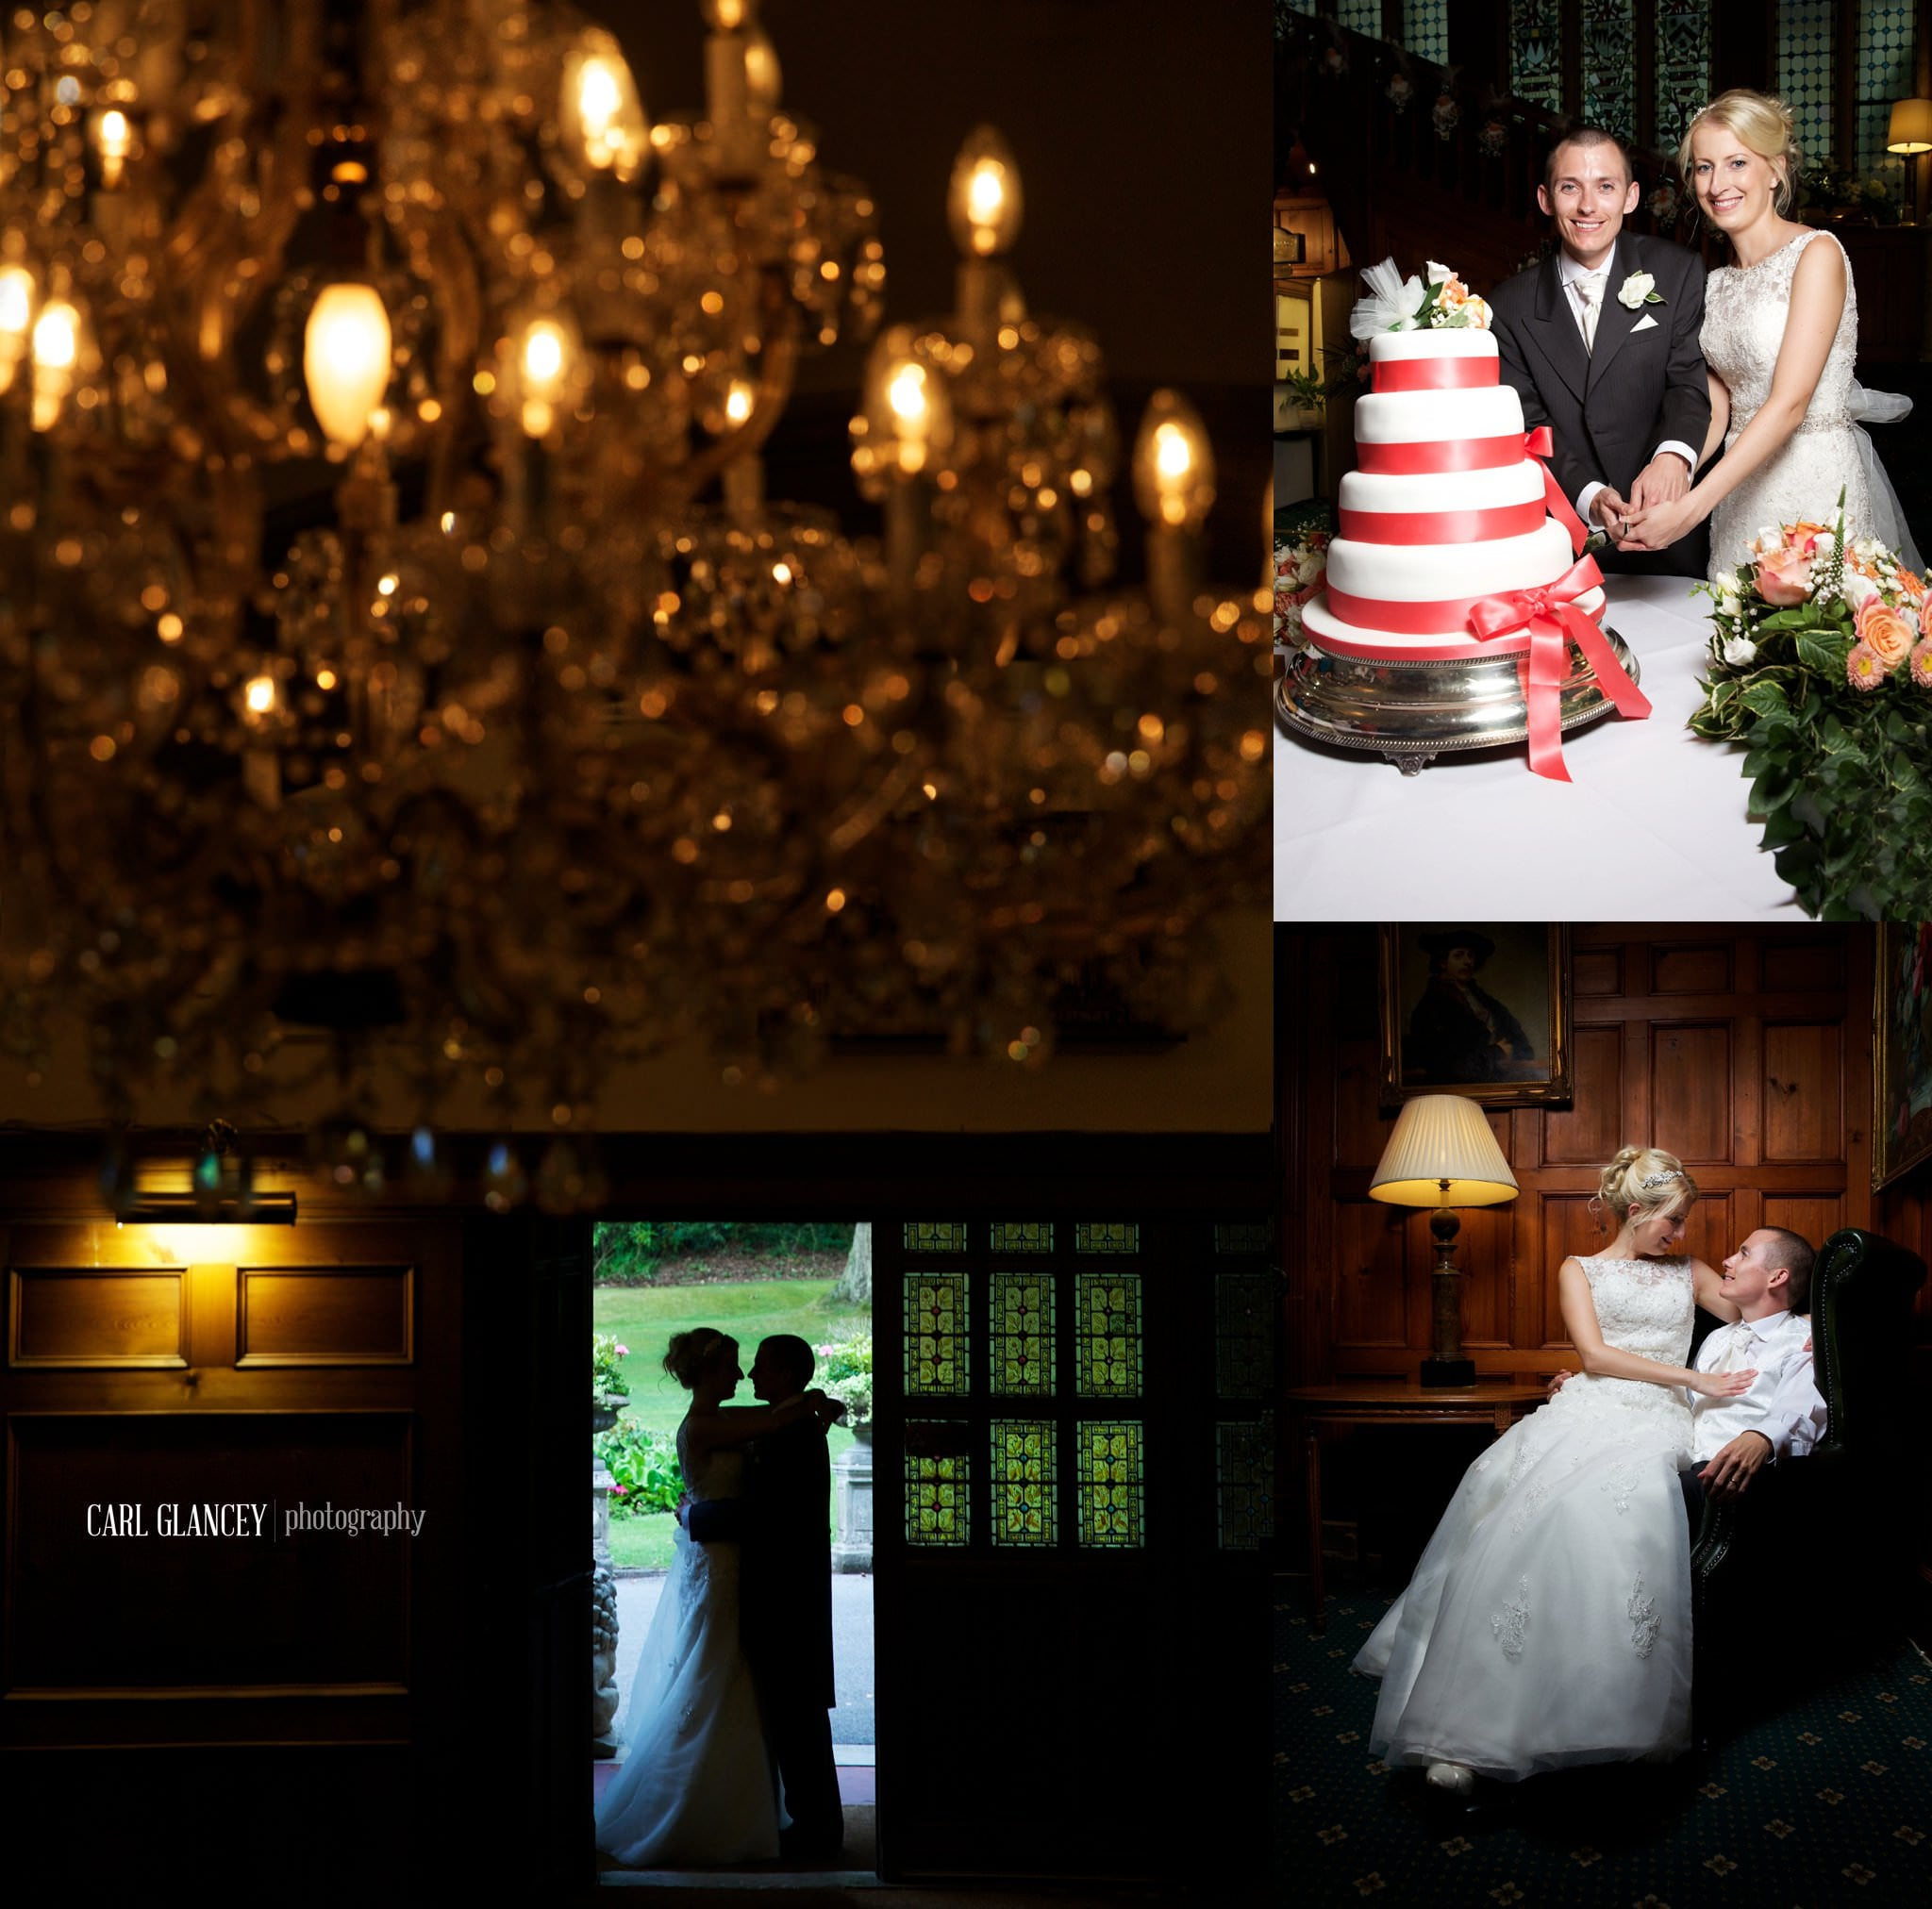 Image Result For Wedding Photographer Prices